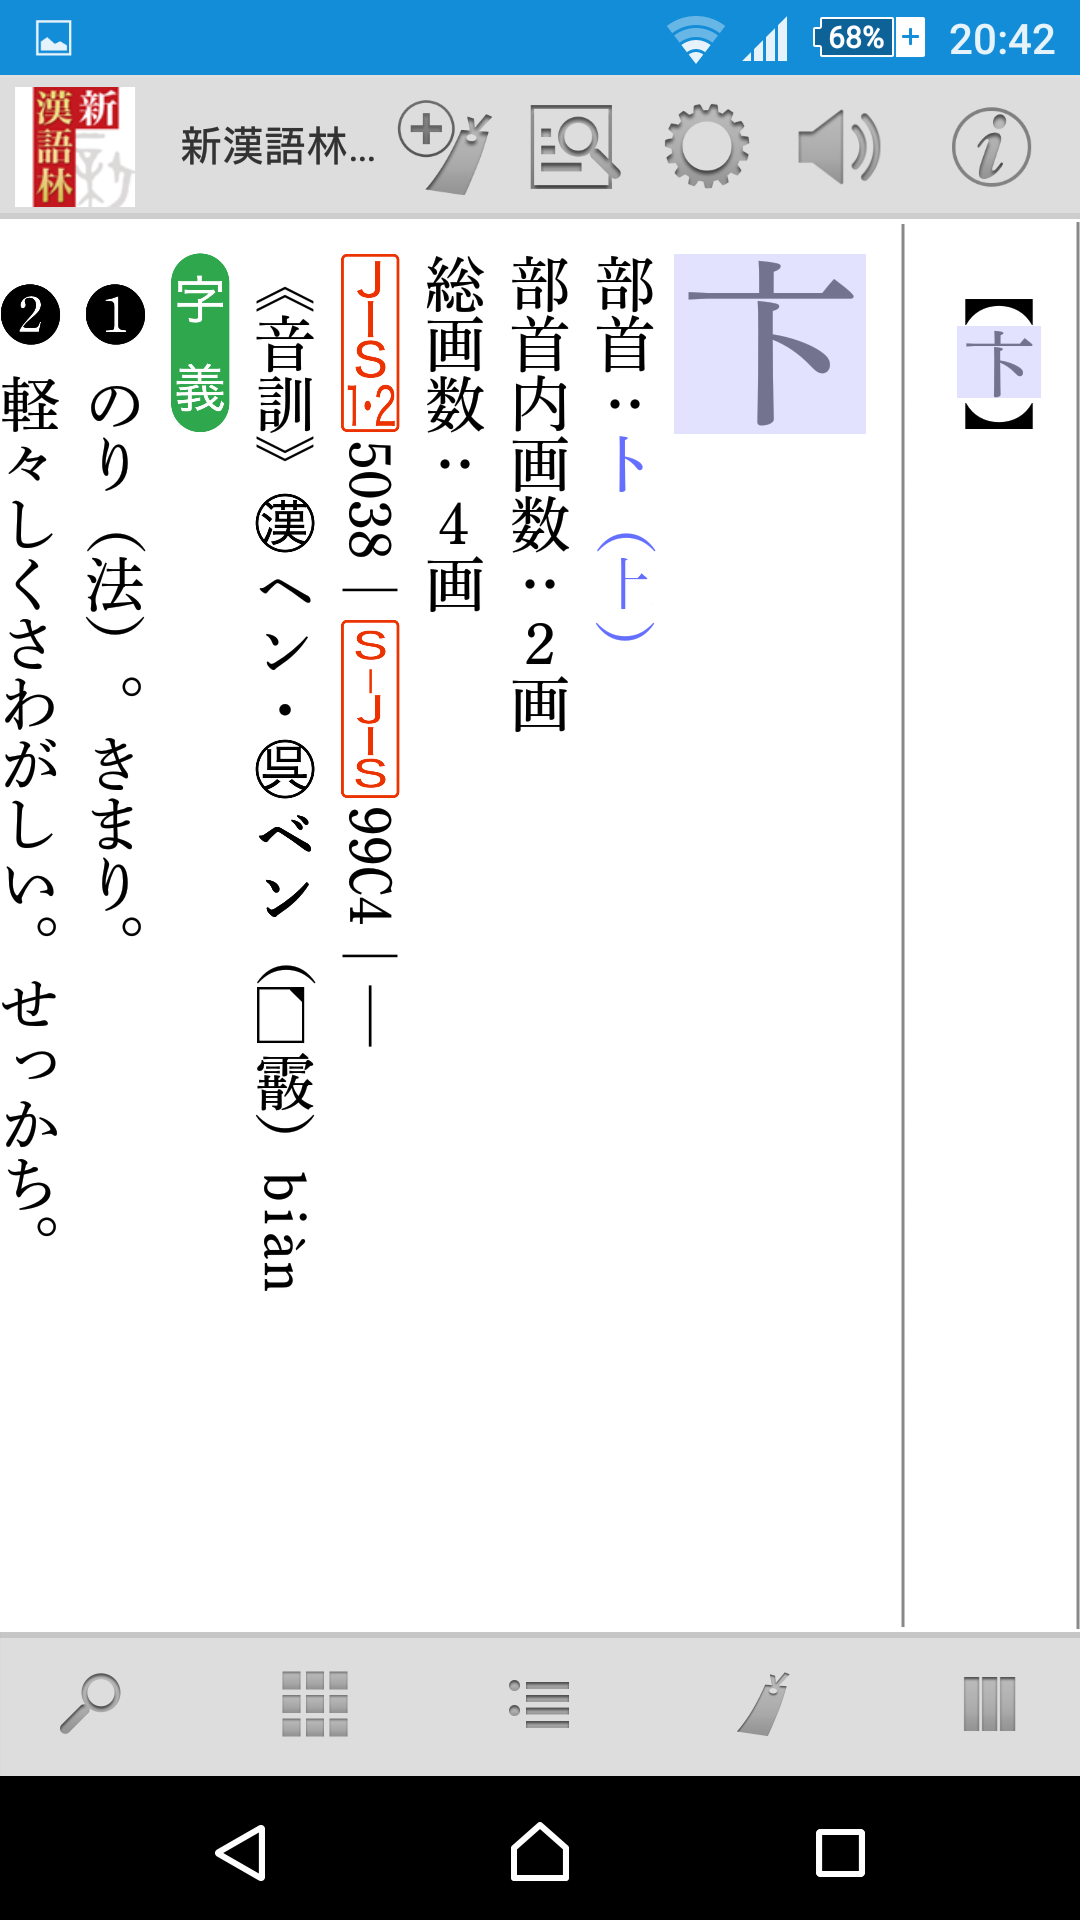 Screenshot_2015-10-05-20-42-11.png